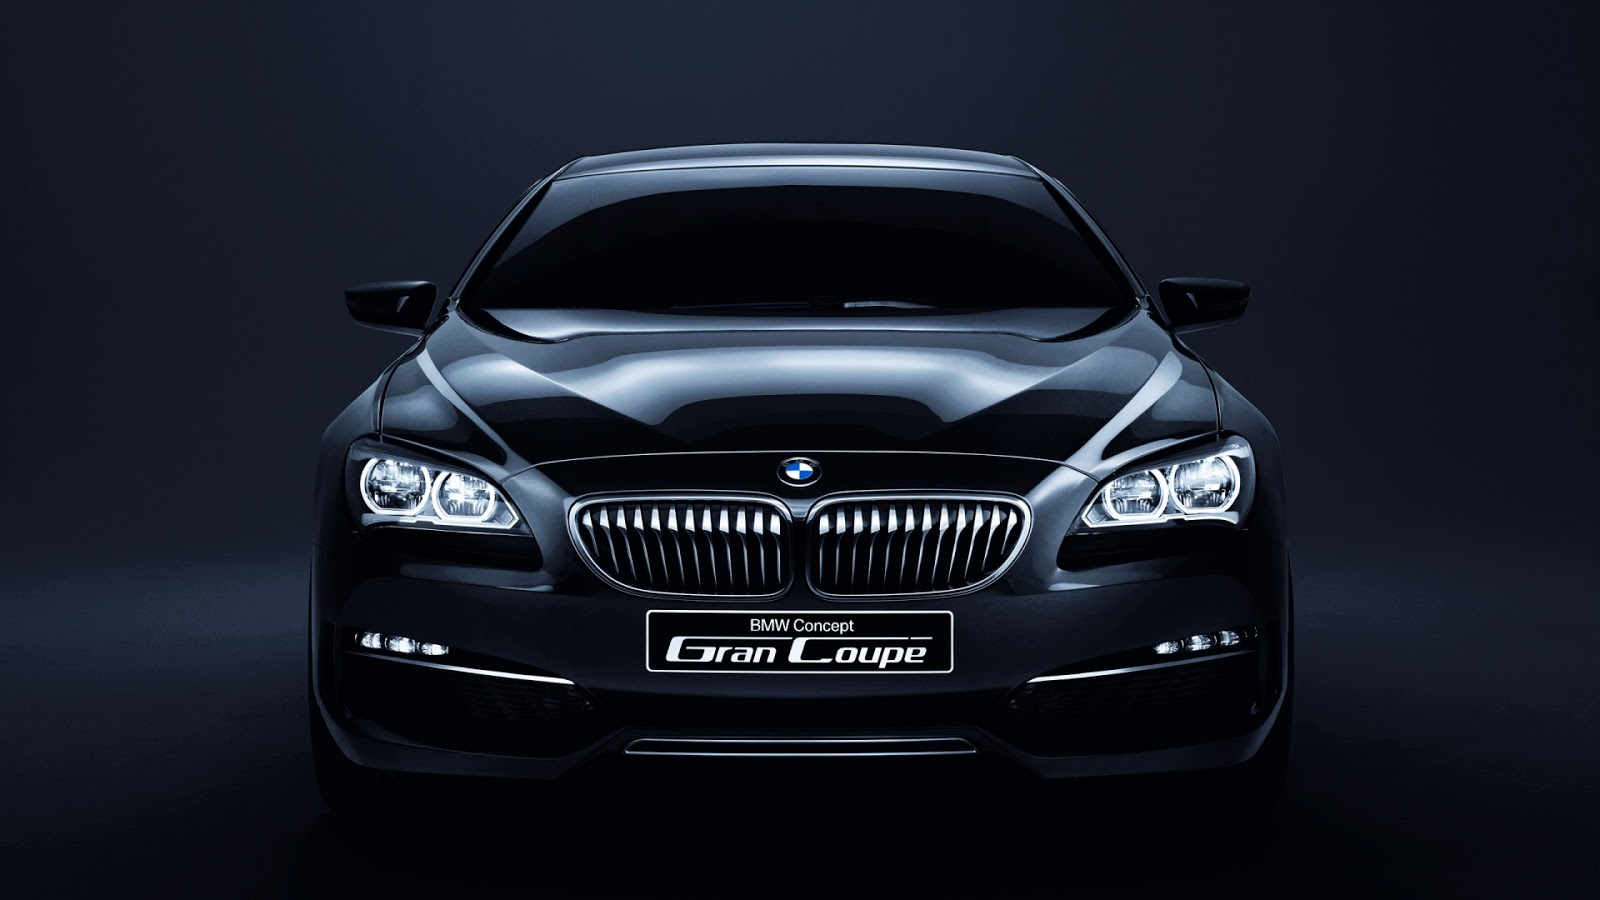 Southwest Bmw Bmw Service And Repair Specialist